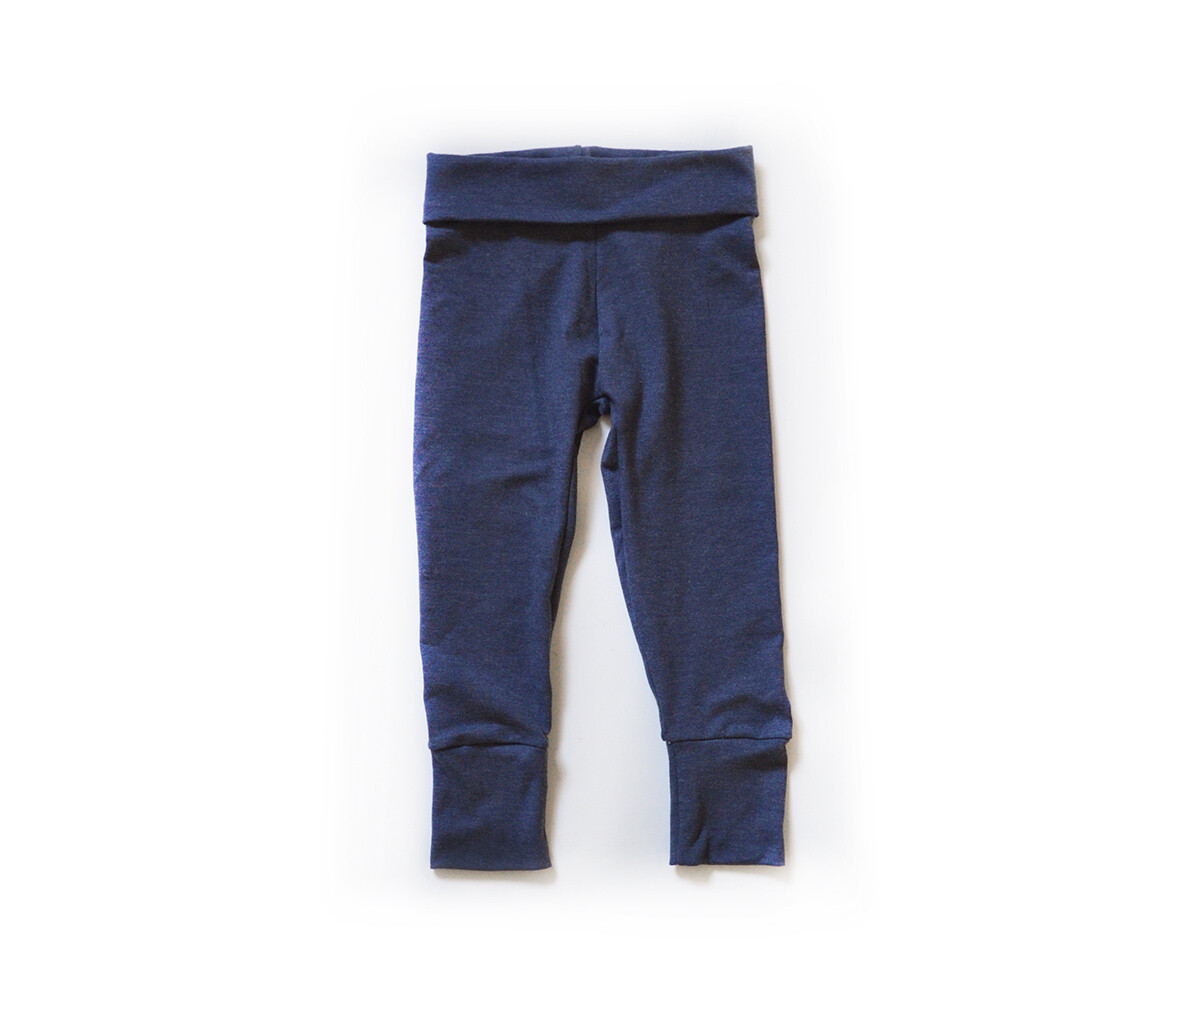 Little Sprout Pants™ in Denim Blue | Grow With Me Leggings - Cotton